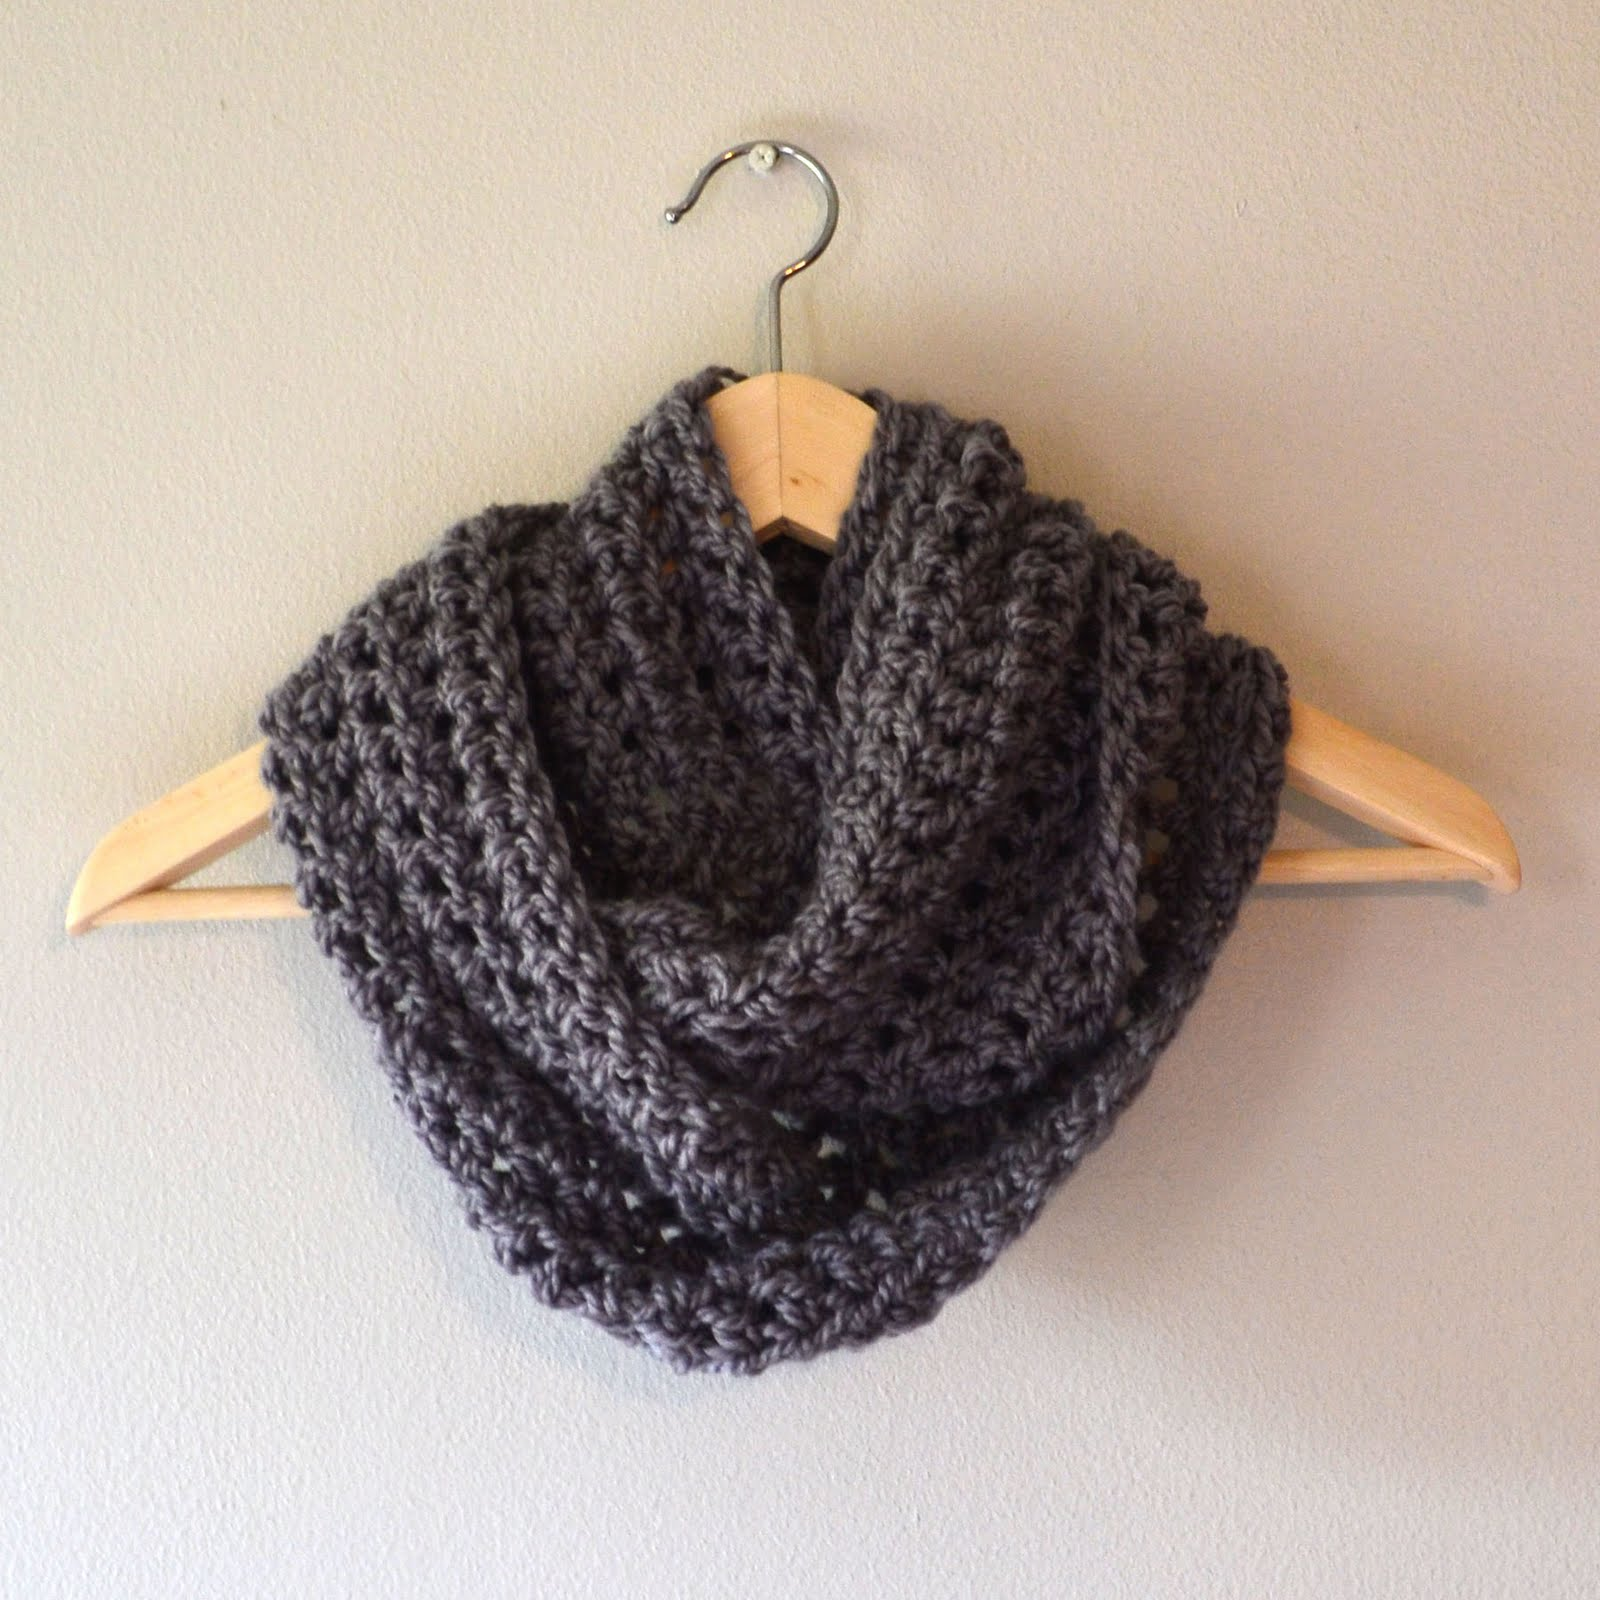 Free Crochet Scarf Patterns For Bulky Yarn : Crochet in Color: Accidental Cowl